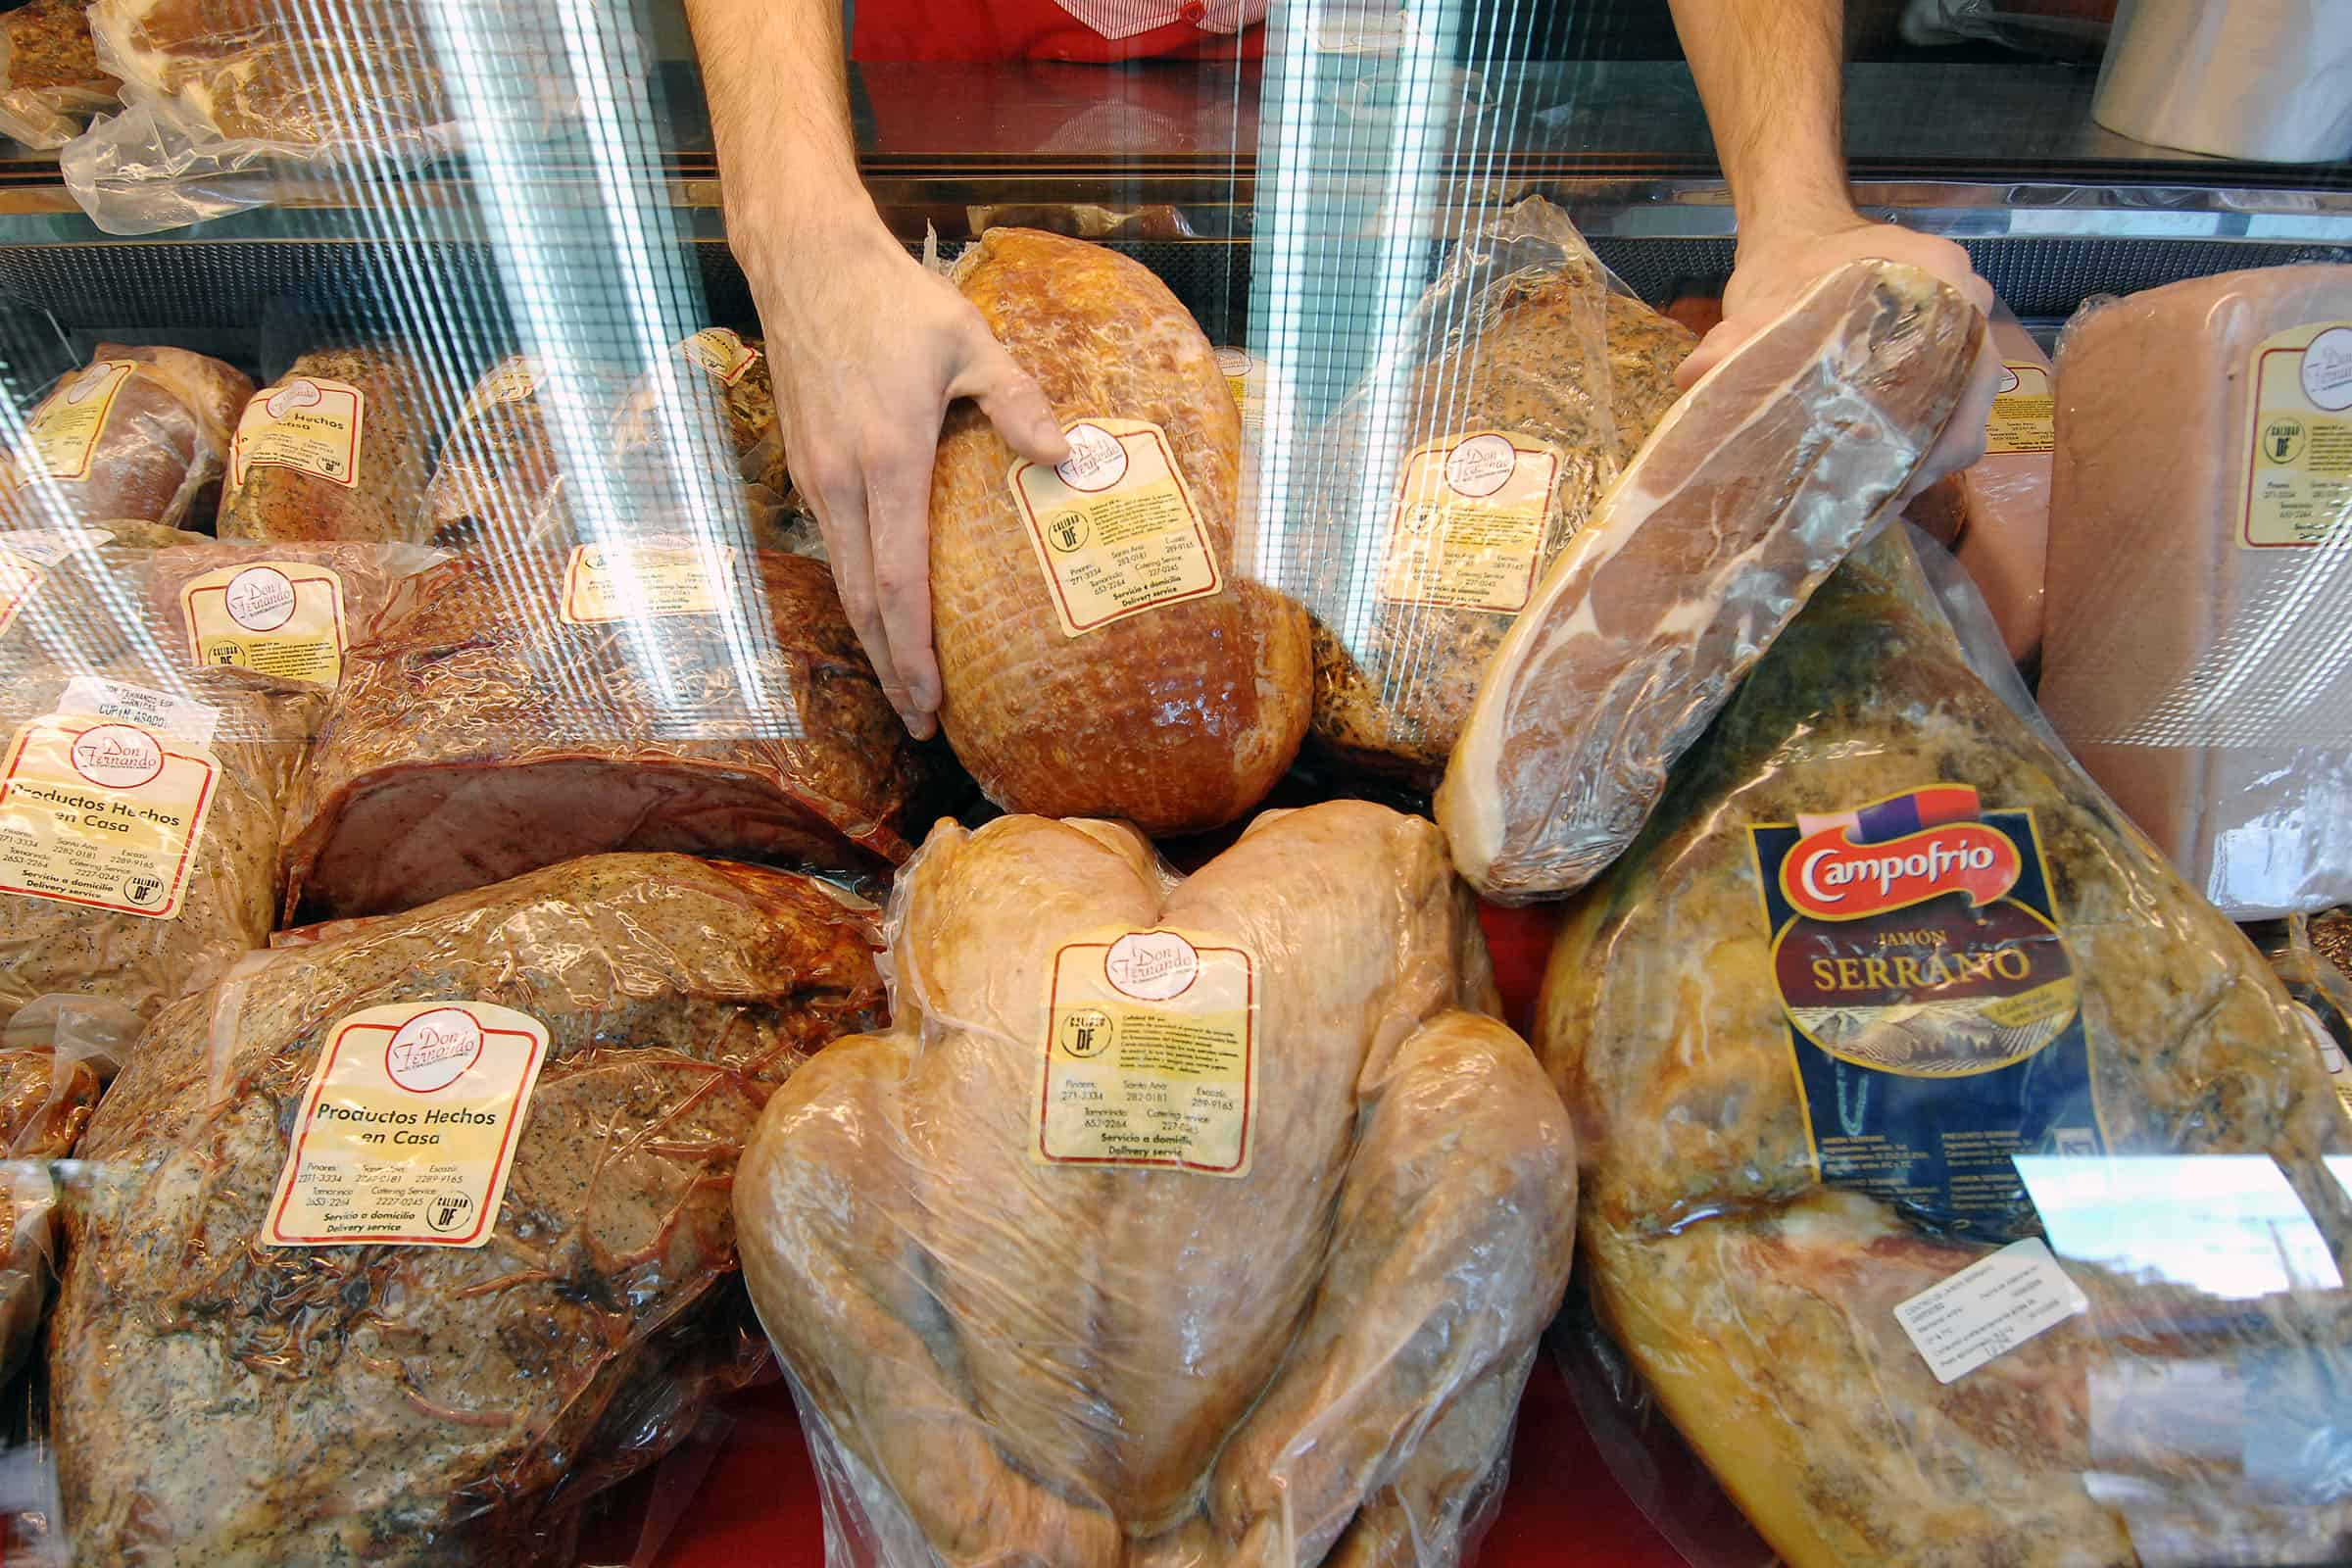 Turkeys aren't cheap in Costa Rica, but they're plentiful in area supermarkets